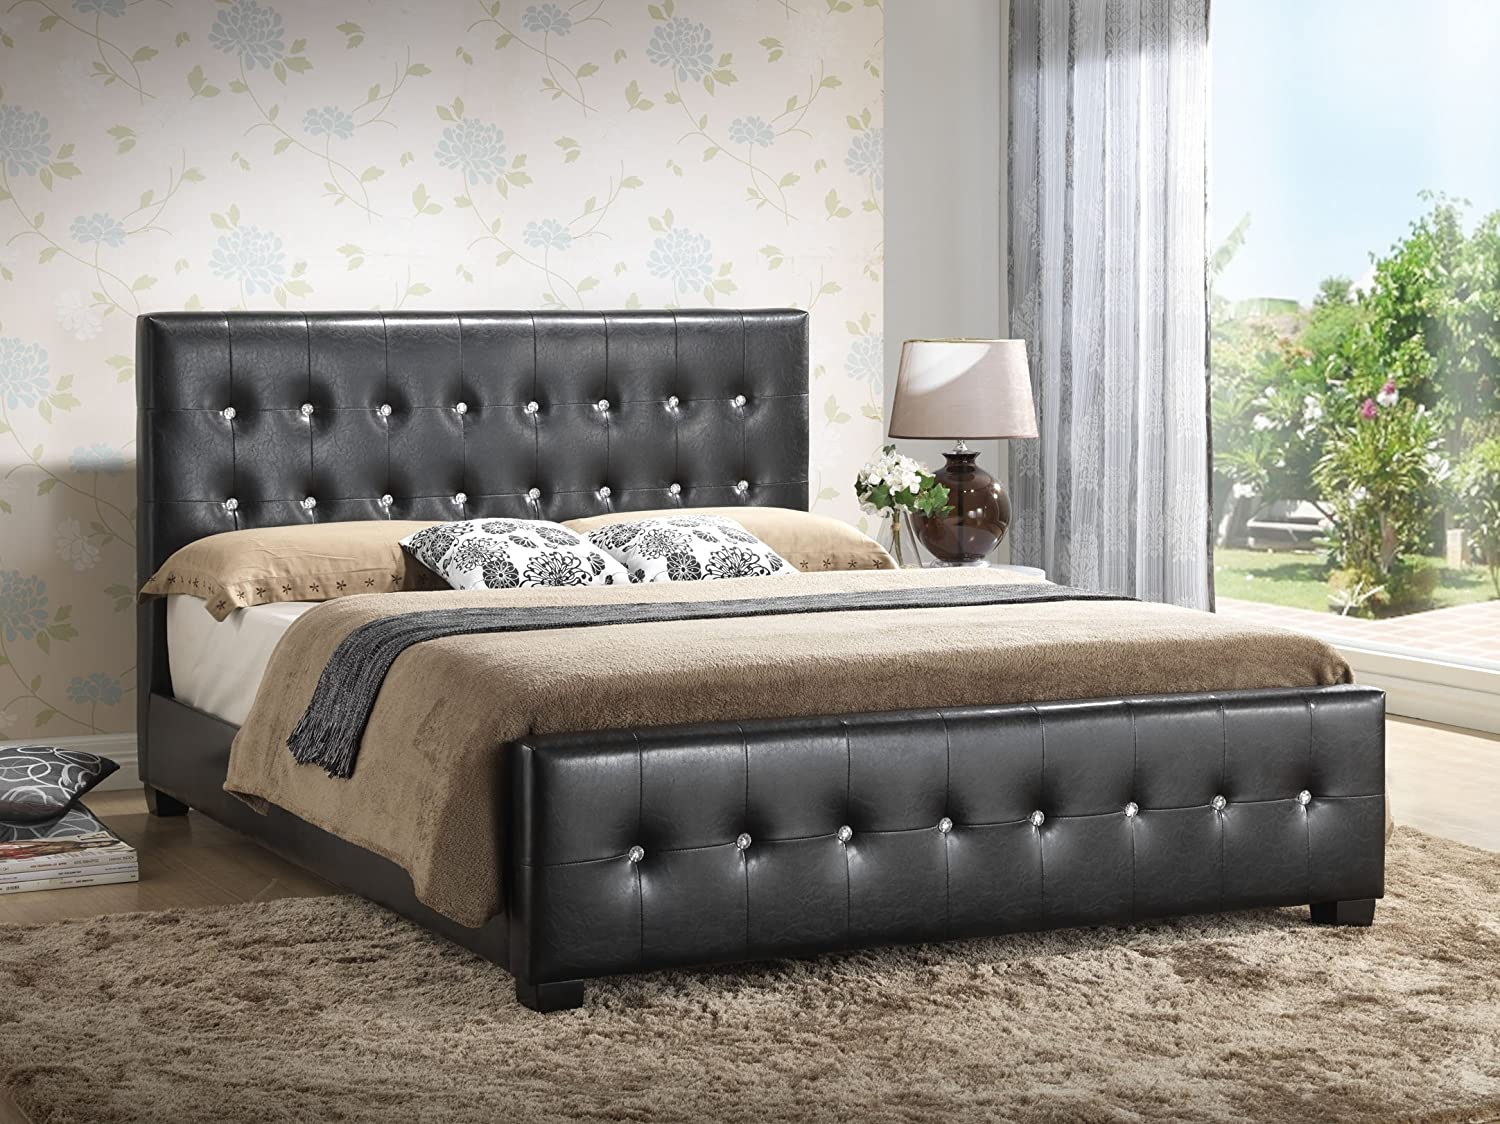 Amazon.com: Black   Queen Size   Modern Headboard Tufted Design Leather  Look Upholstered Bed: Kitchen U0026 Dining